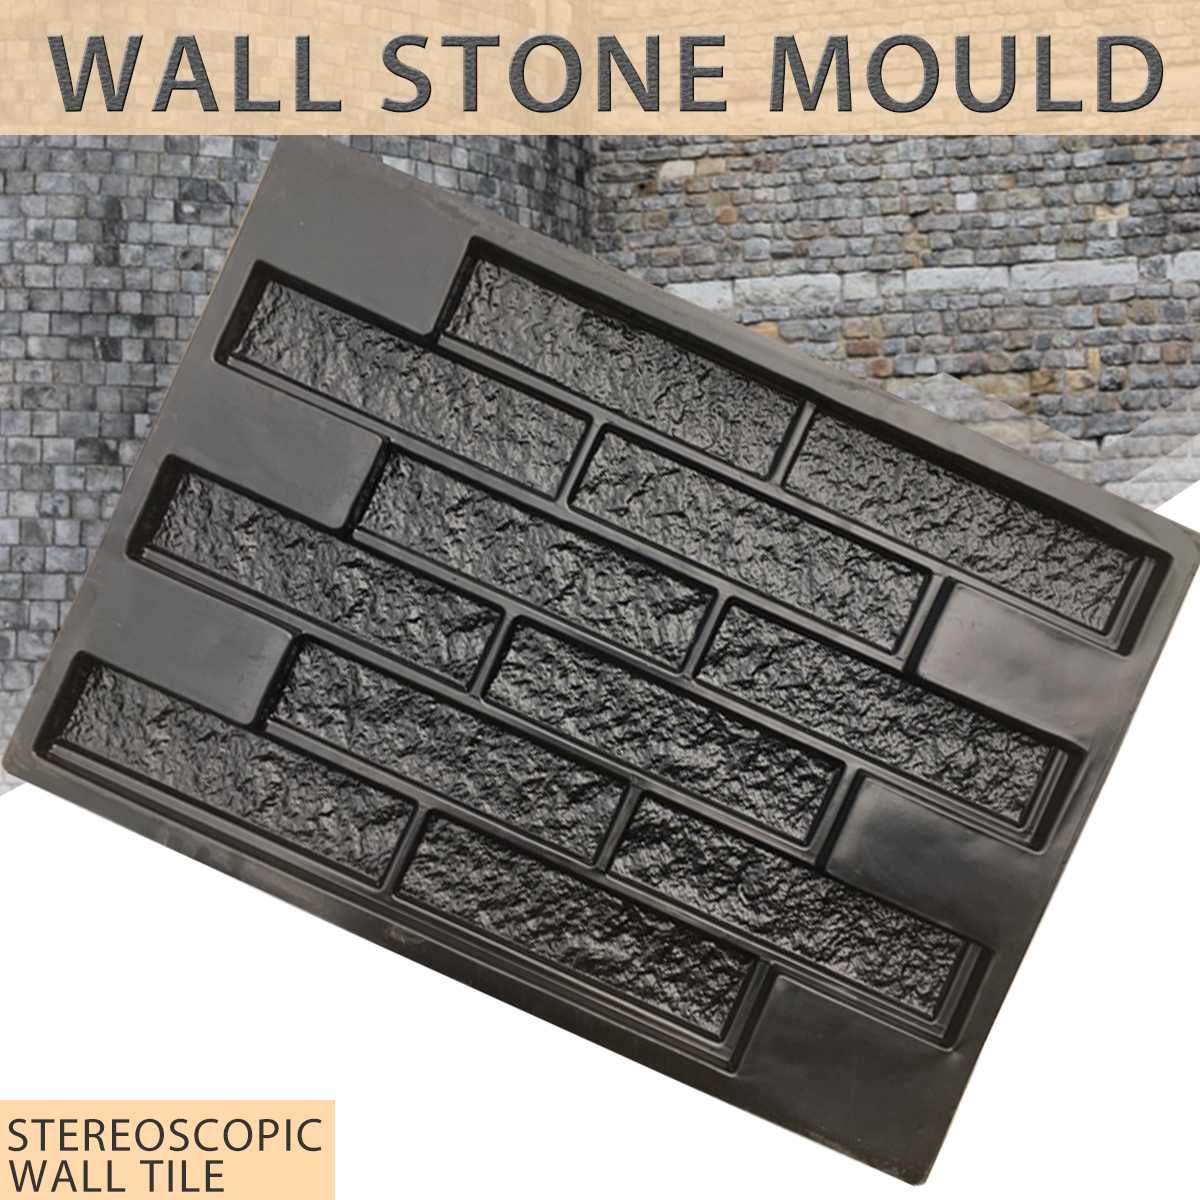 Plastic Molds Decorative-Mold Cement-Tiles Old-Brick Wall-Stone Garden-House Concrete title=